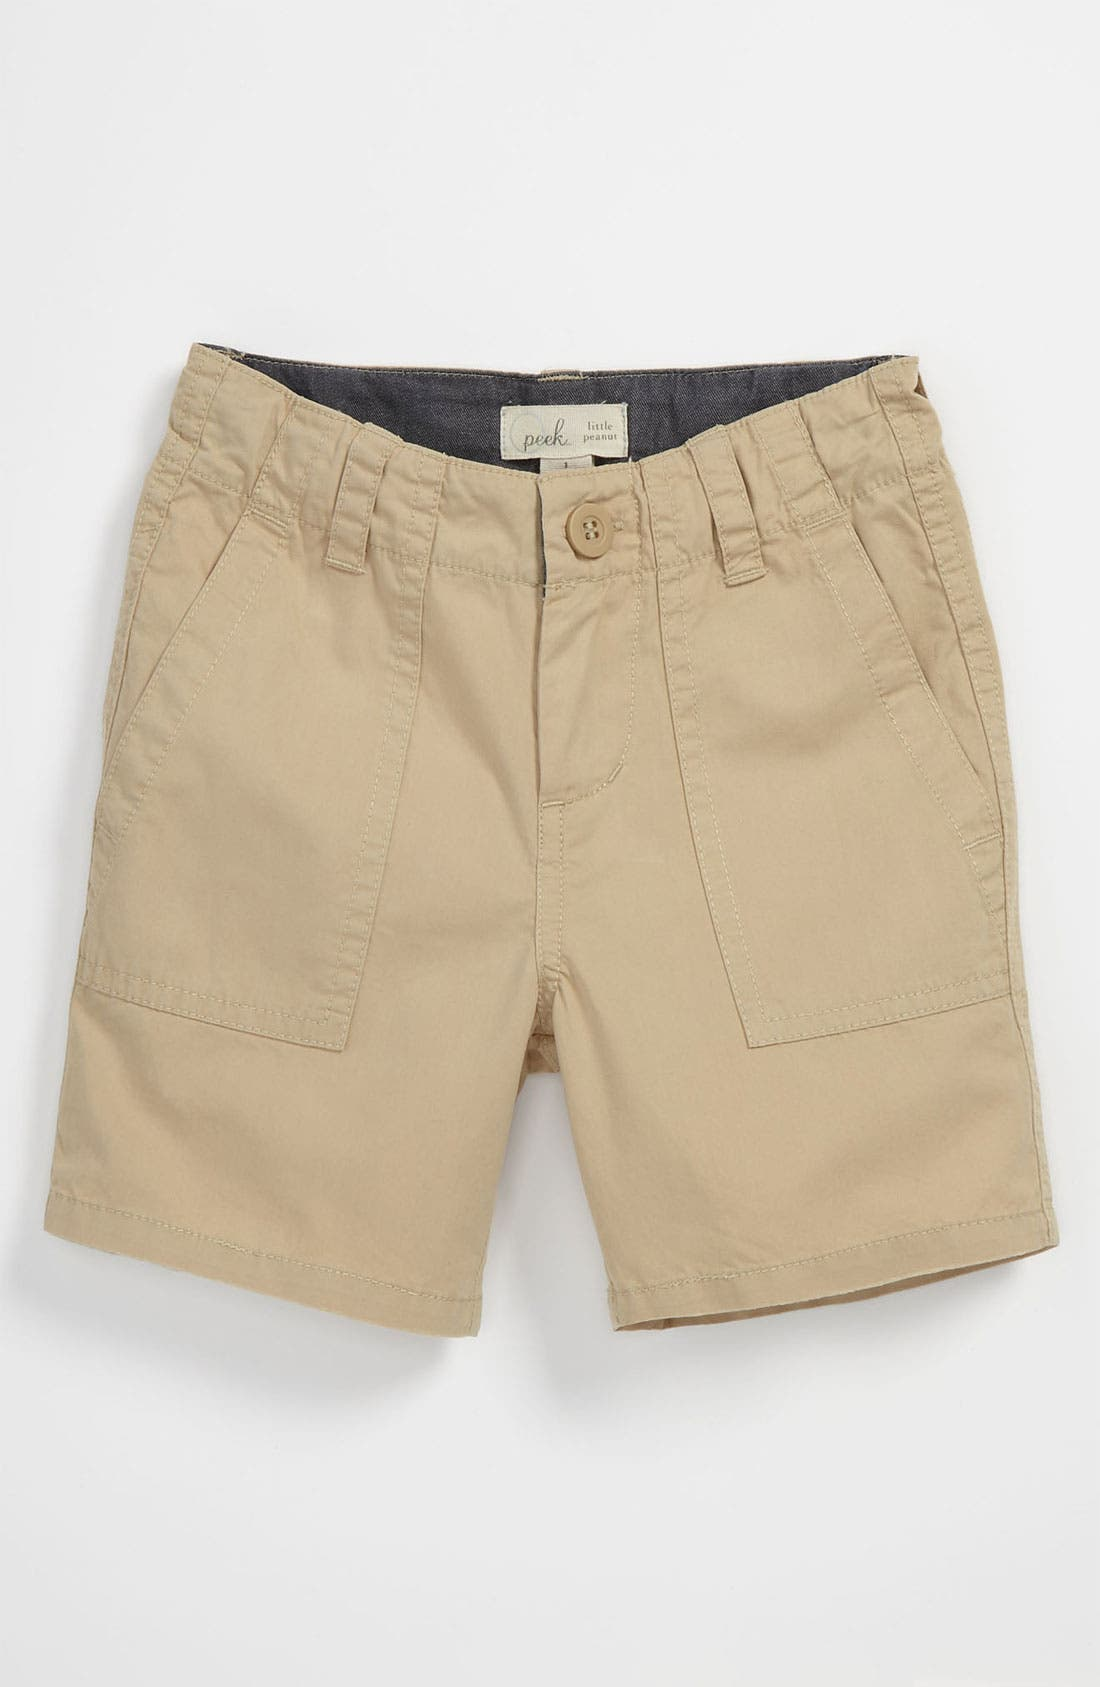 Alternate Image 1 Selected - Peek 'Jericho' Shorts (Baby)